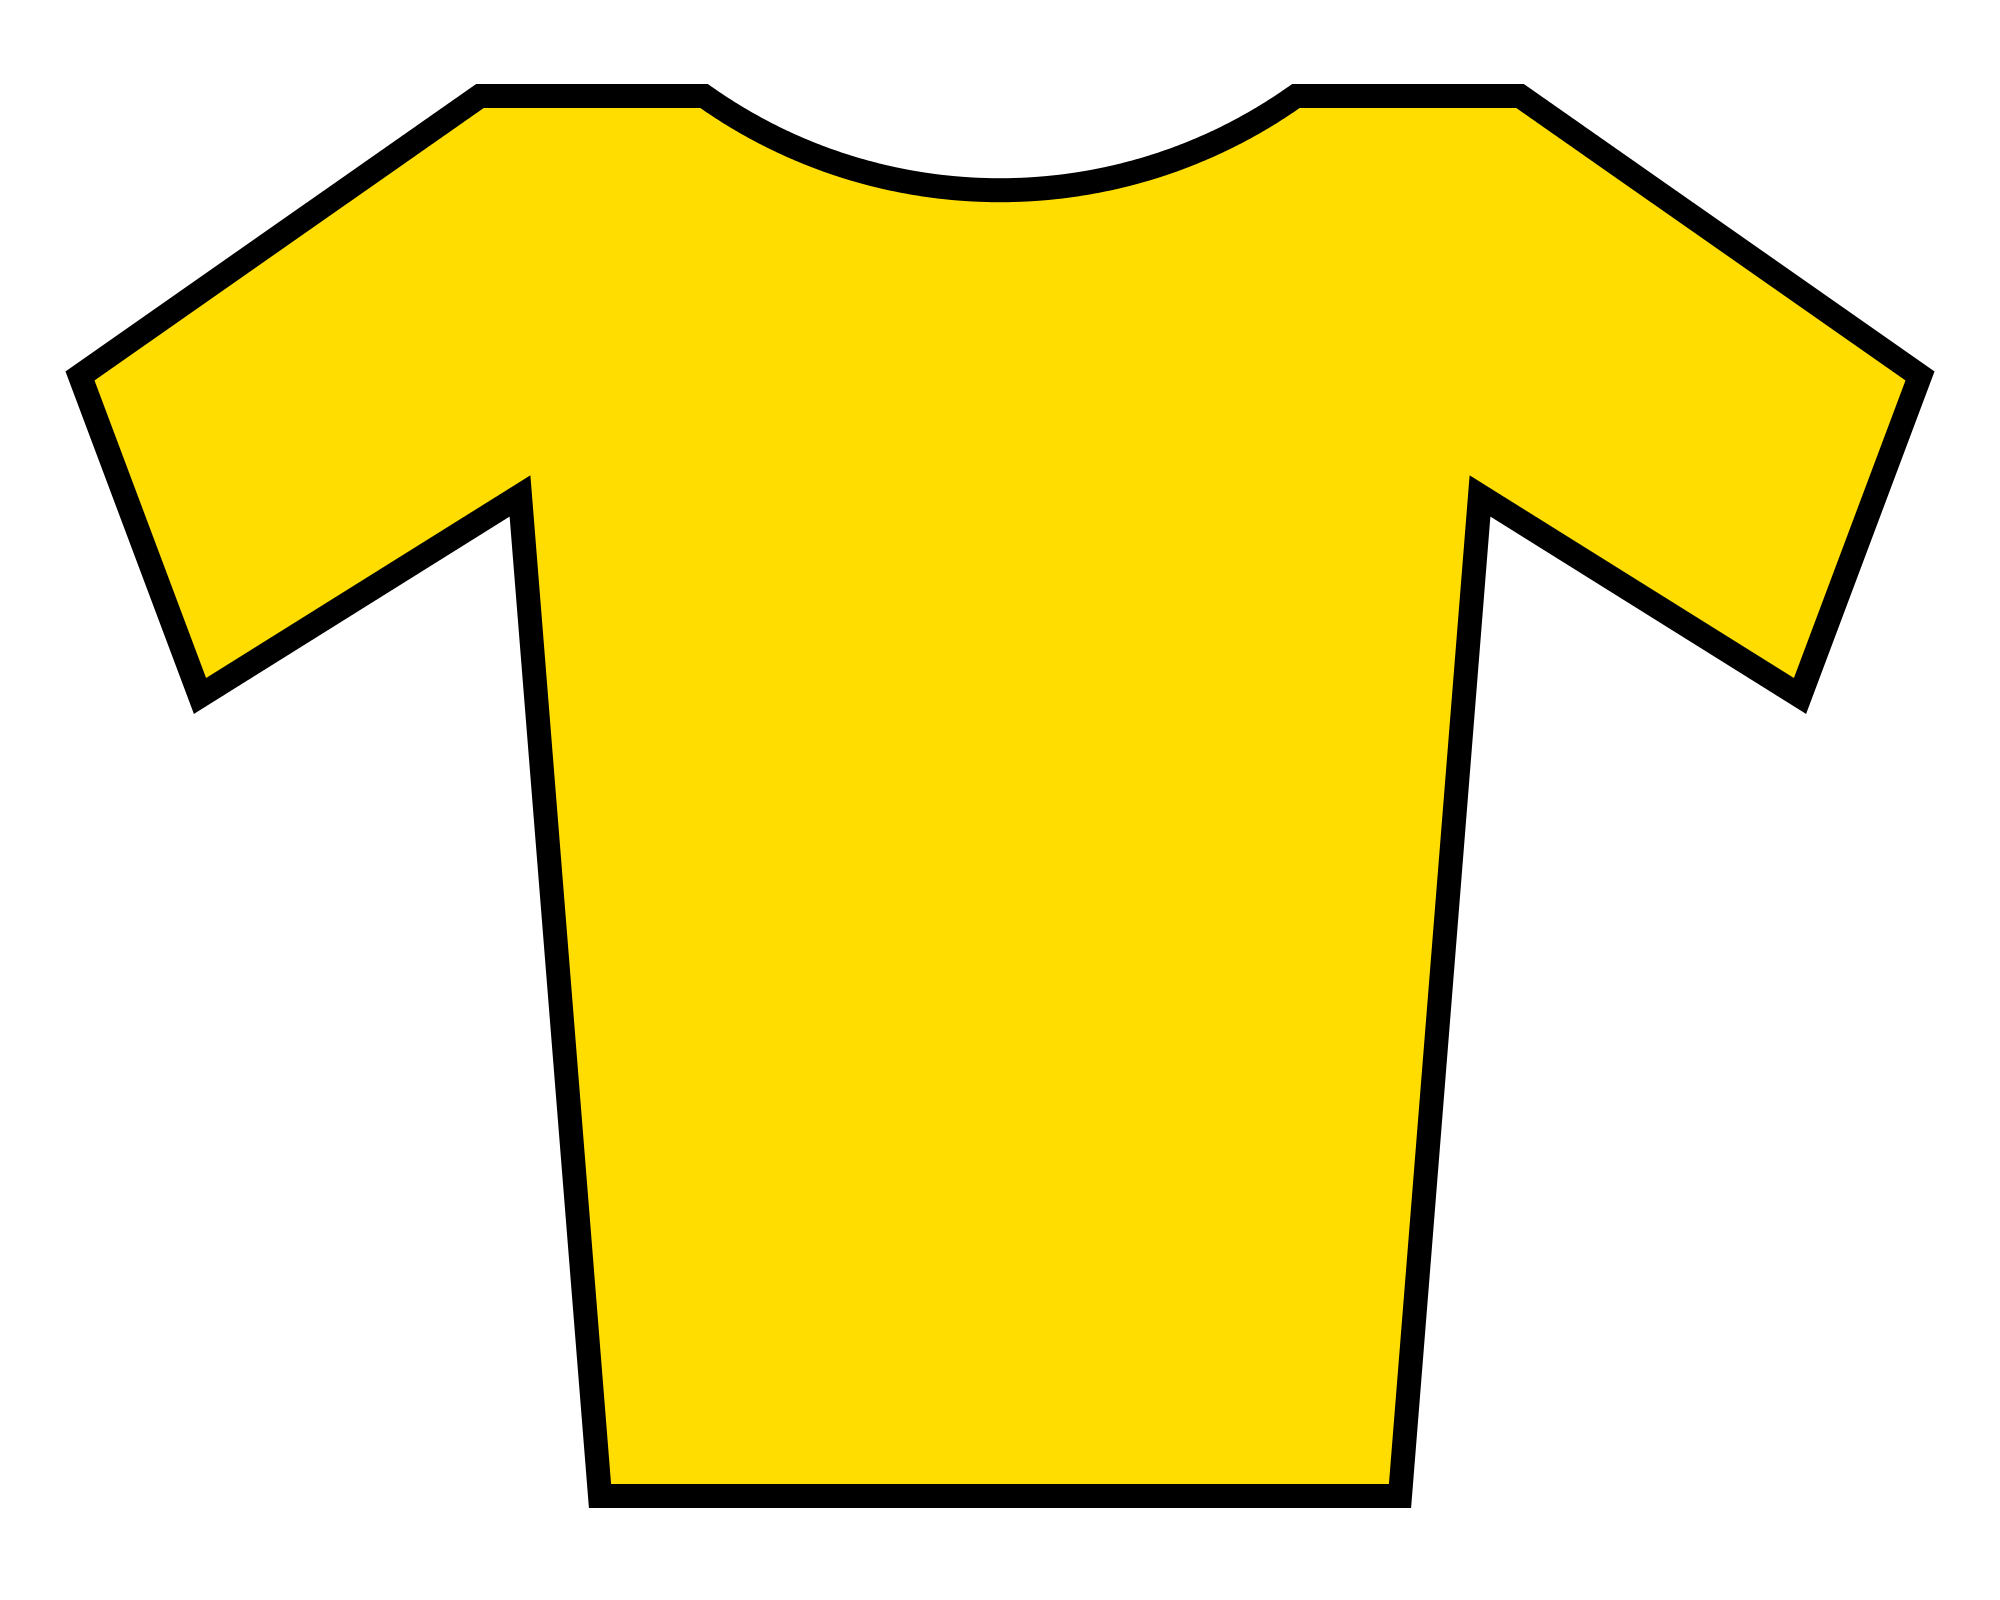 Swoosh svg jersey. File yellow wikimedia commons